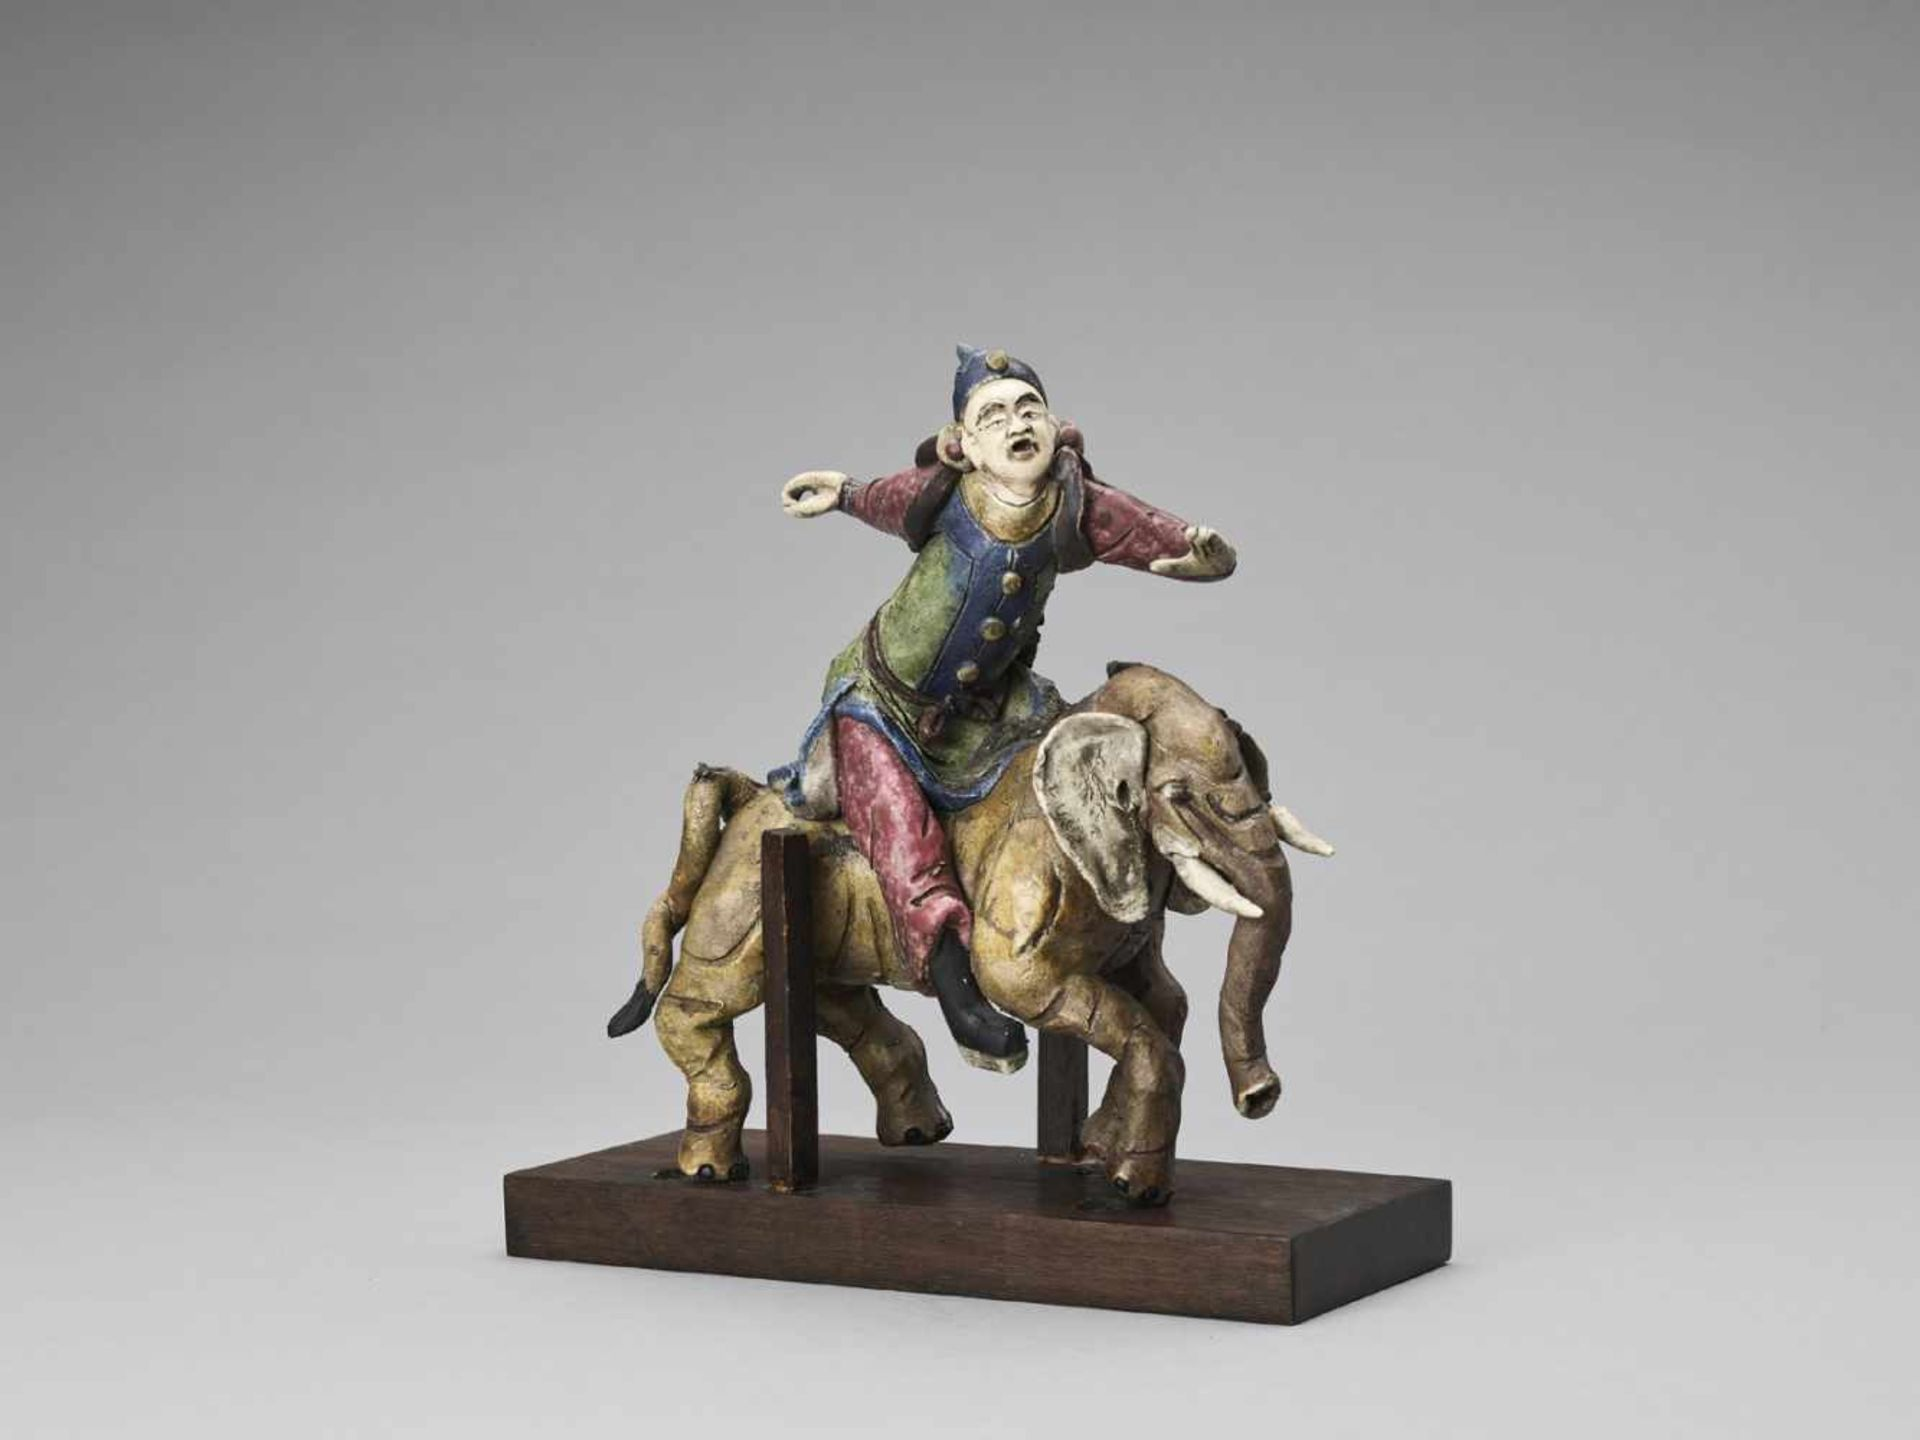 Los 395 - A GLAZED TERRACOTTA FIGURE OF A DIGNITARY RIDING AN ELEPHANT, MID-QING